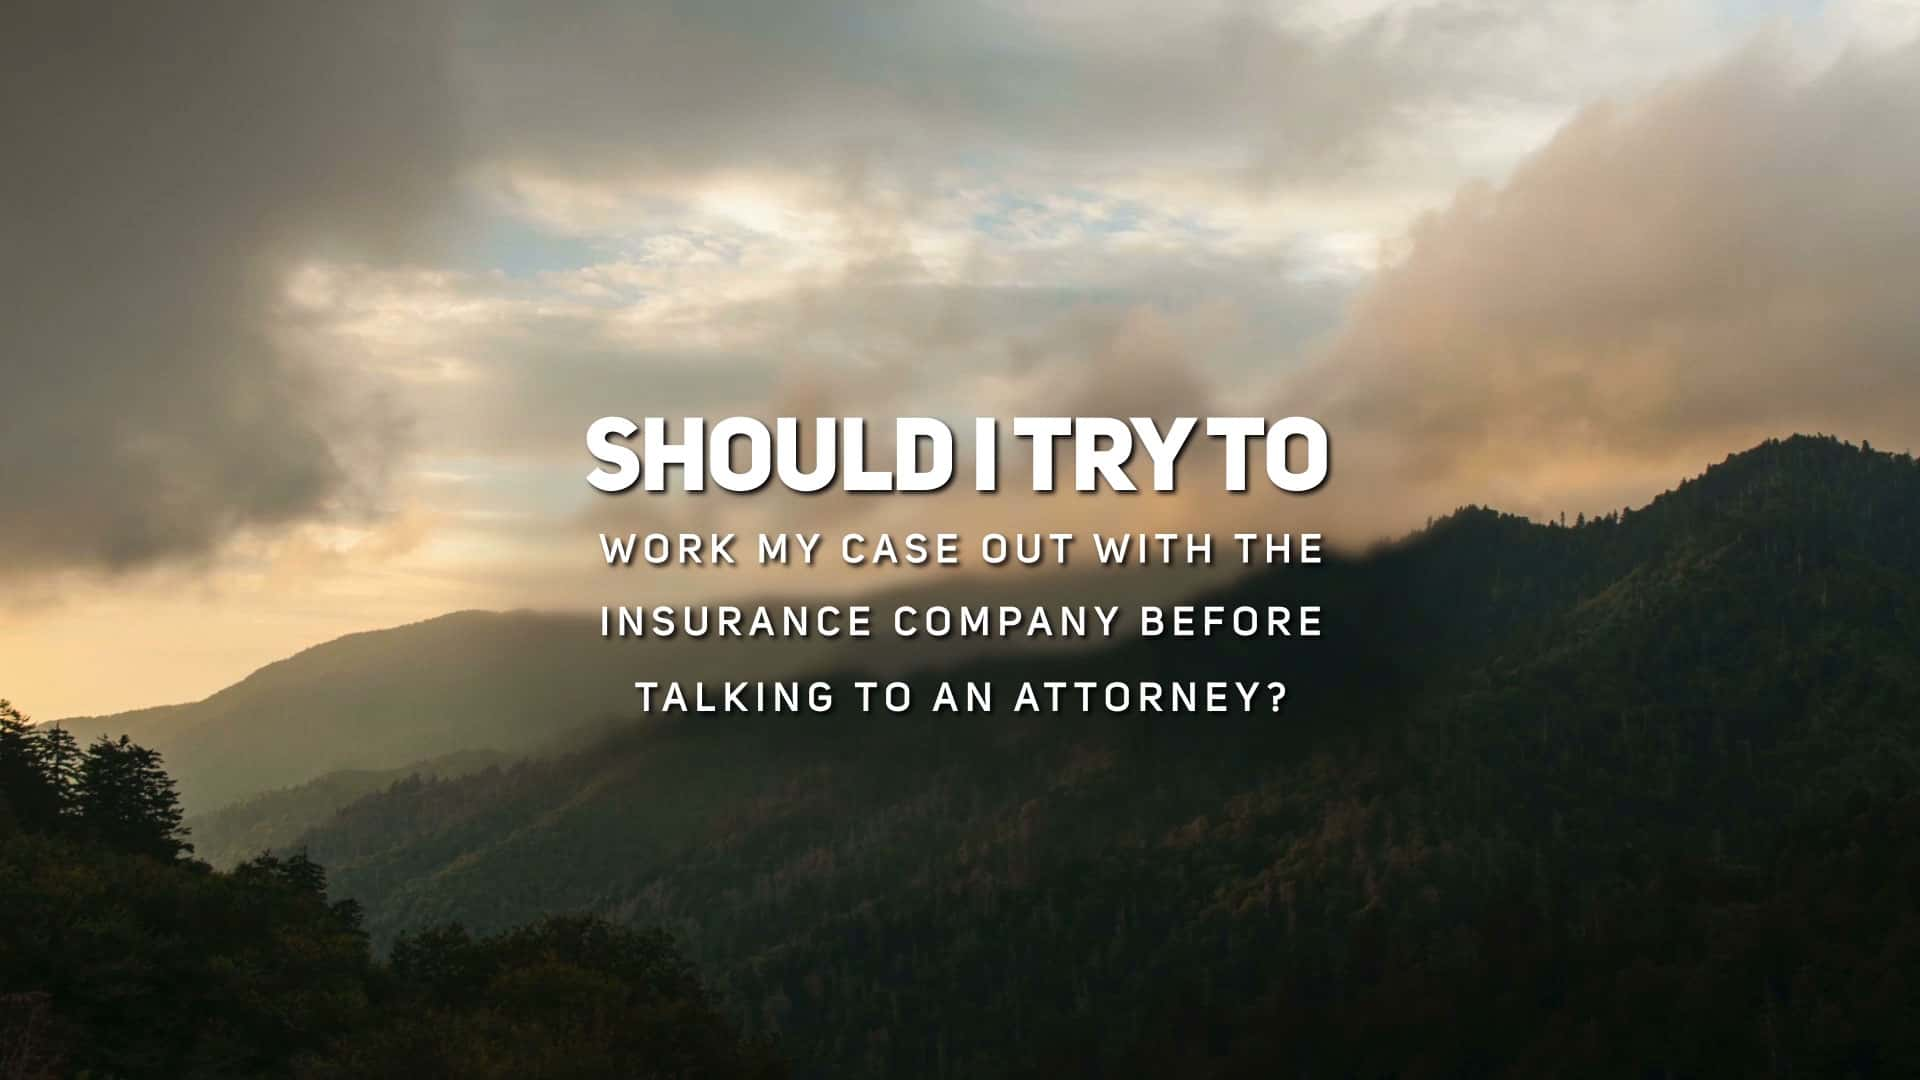 Should I Try to Work My Case Out with the Insurance Company Before Talking to an Attorney